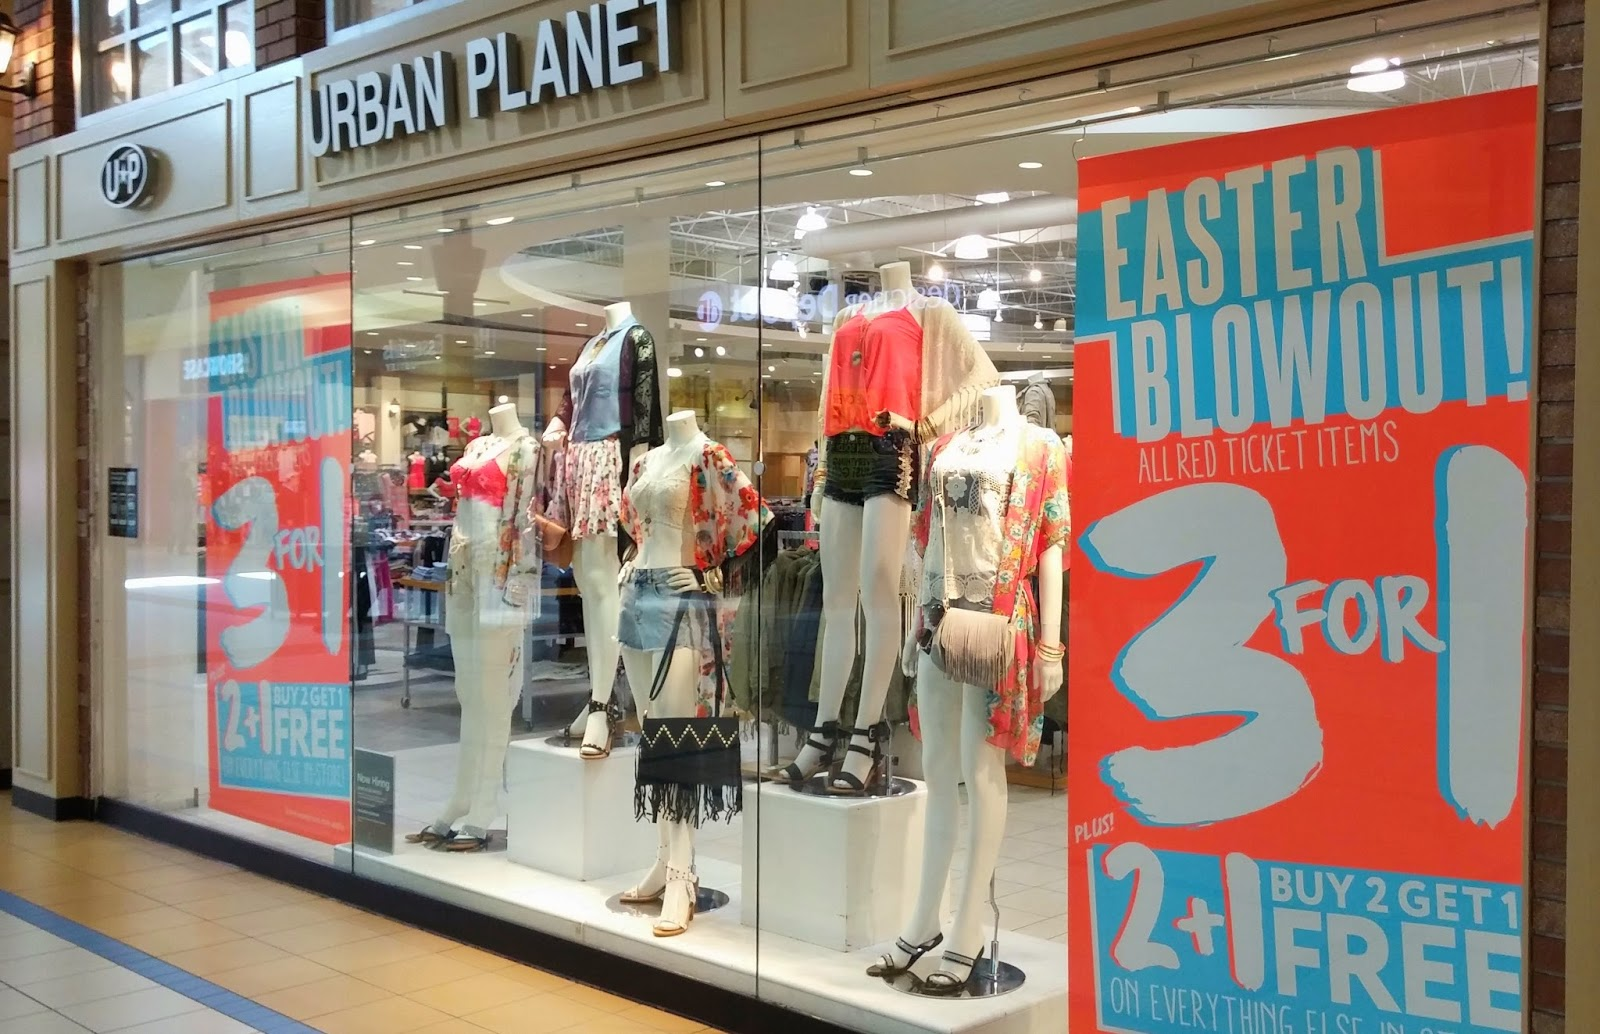 Urban Planet Dixie Outlet Mall